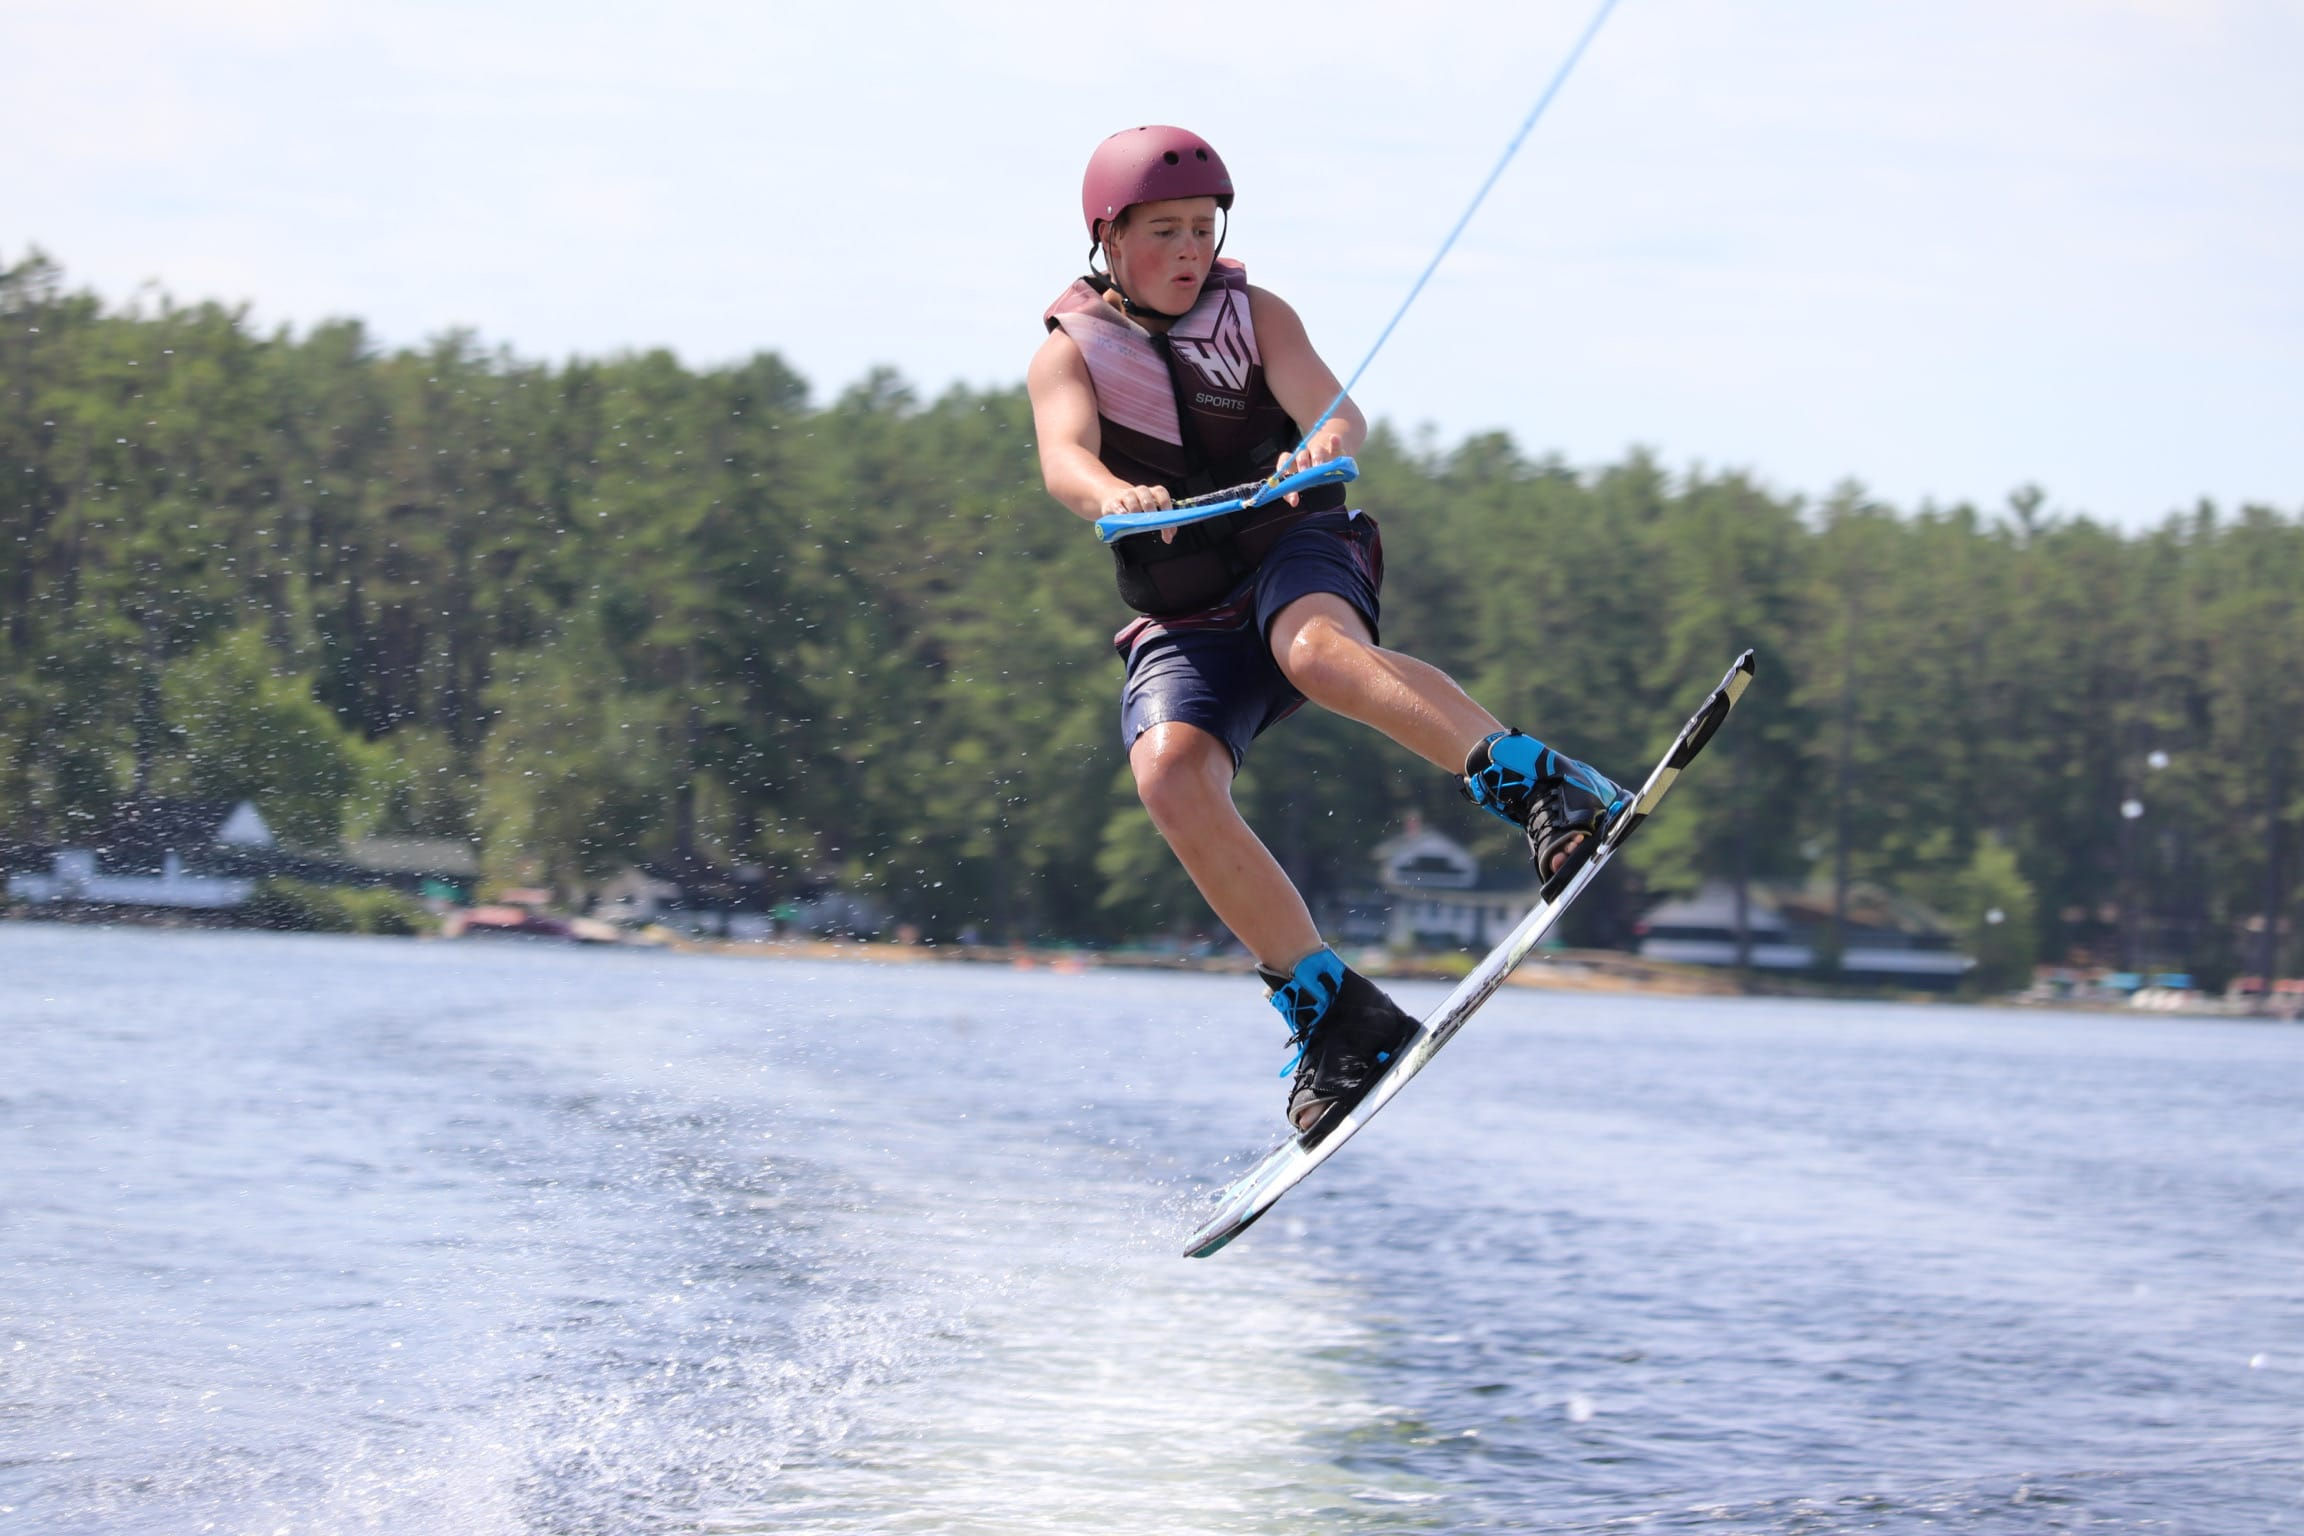 Boy jumping into air with wakeboard